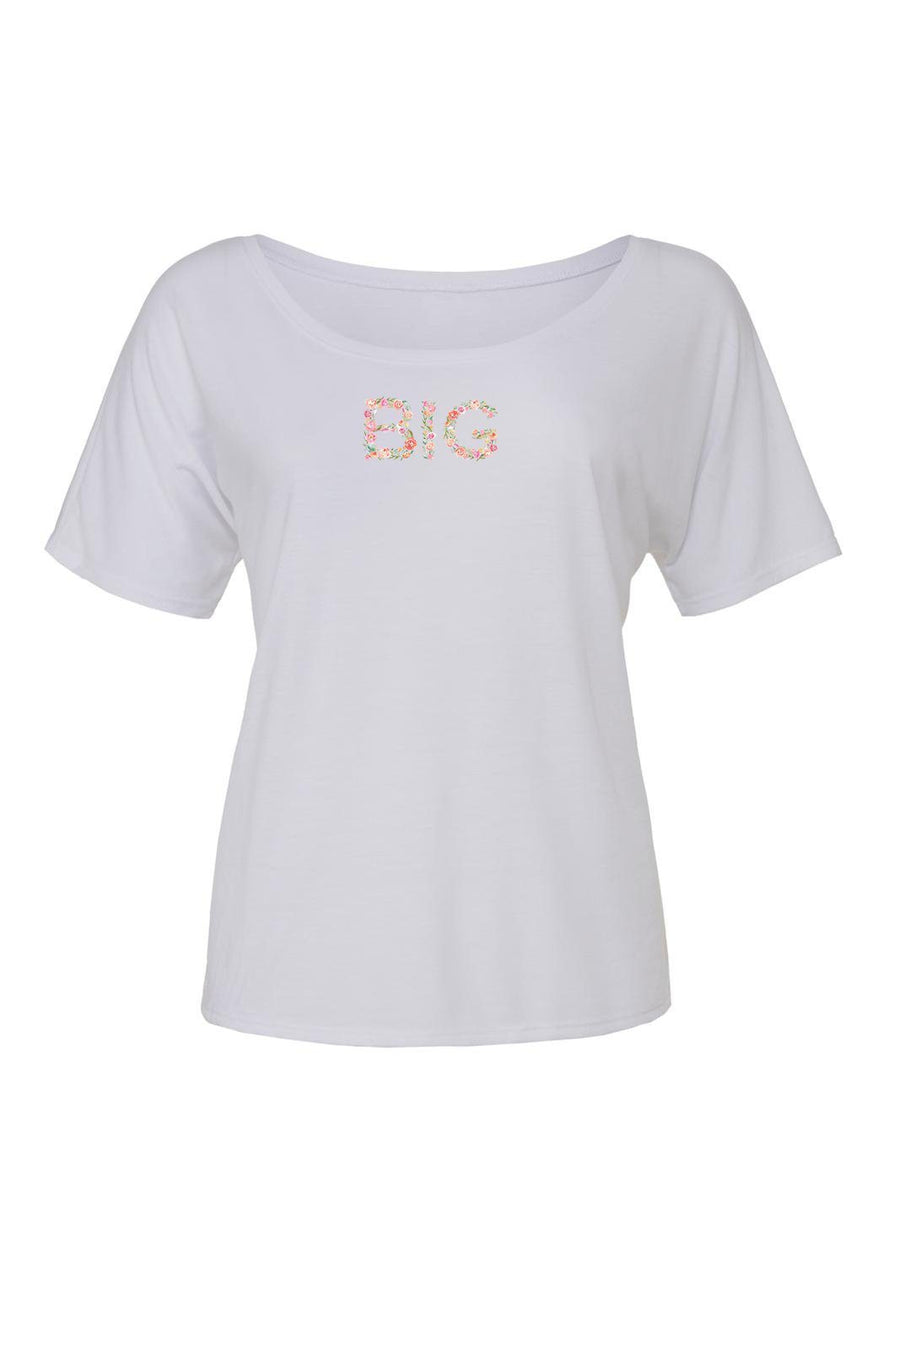 Big Little Floral Letters Shirt - Bella Slouchy Scoop Neck Short Sleeve, Ladies, Sunny and Southern, - Sunny and Southern,